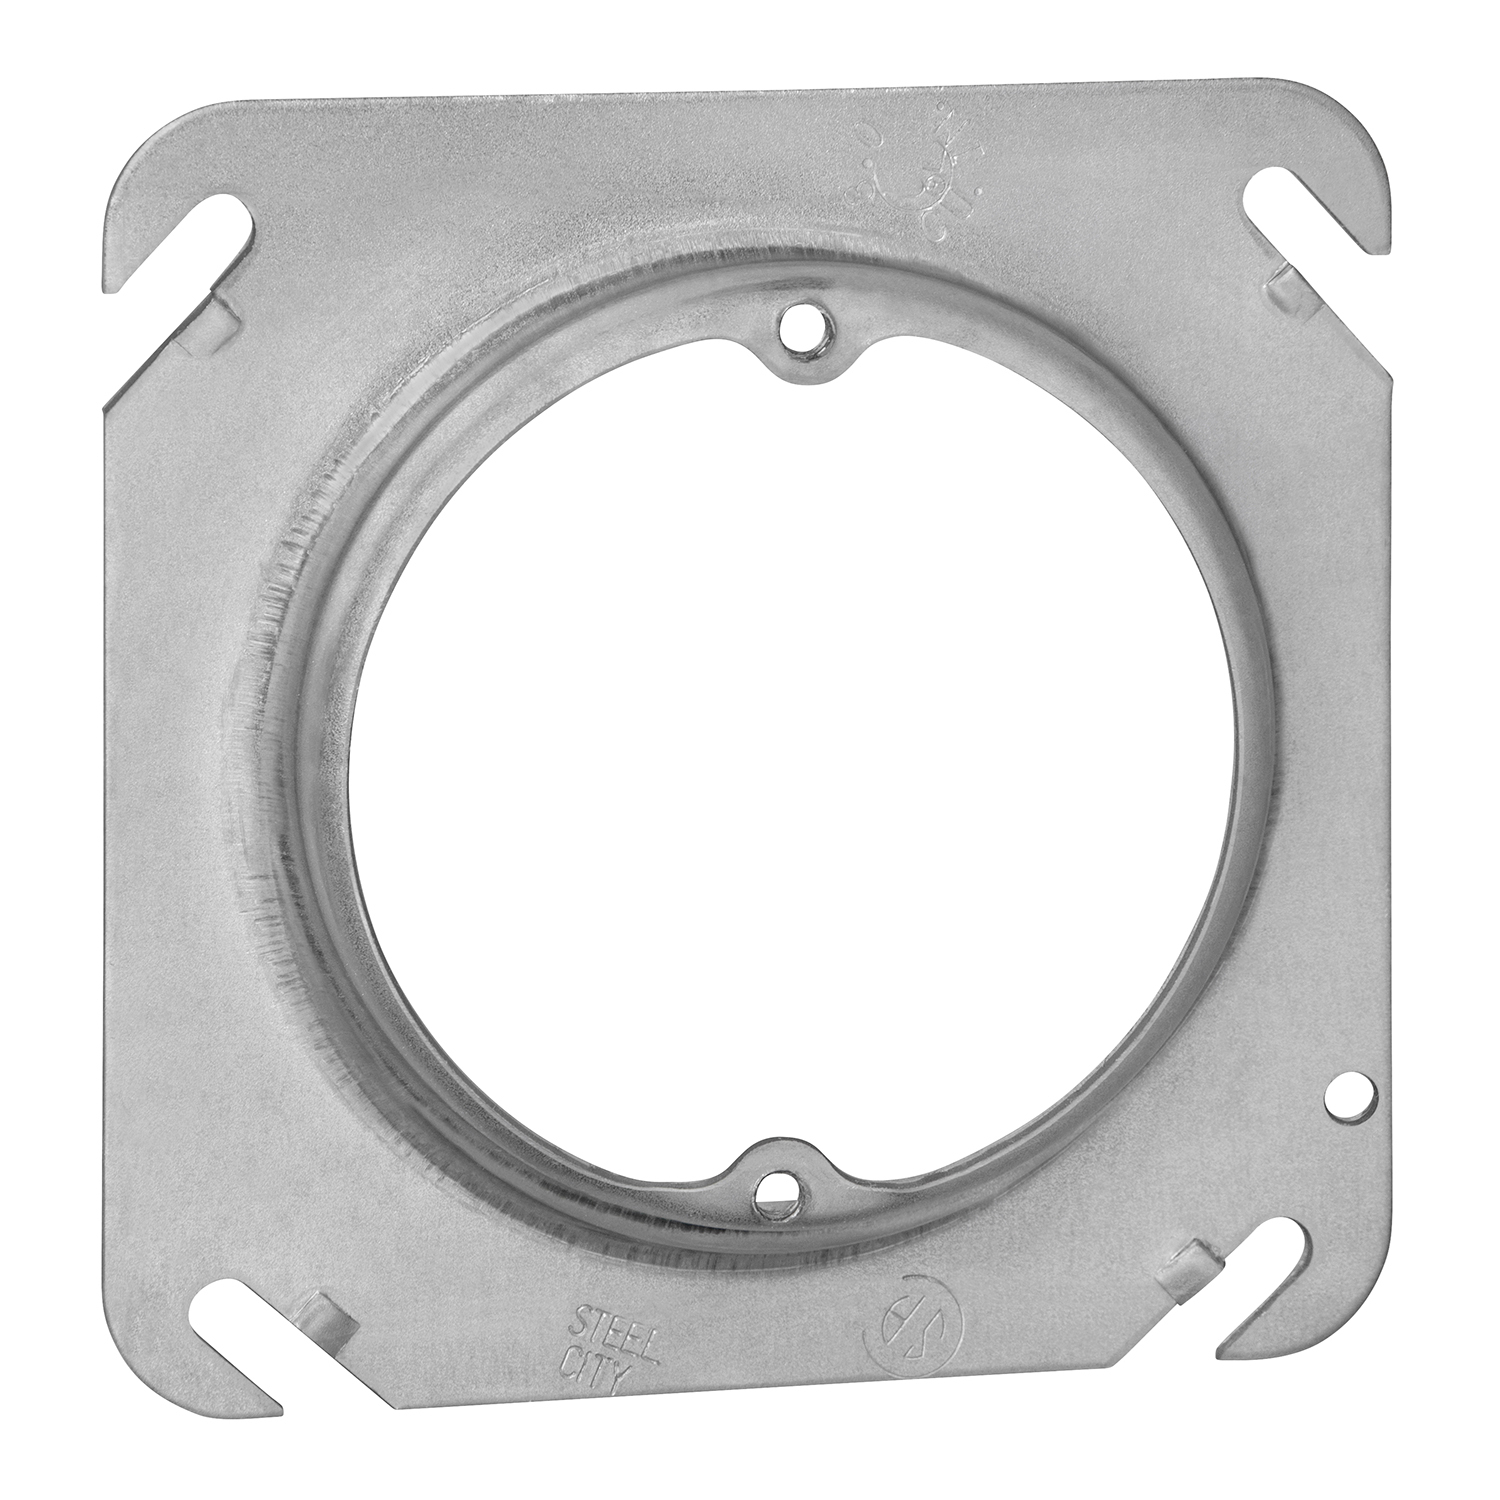 """STEELCTY 52C3-1/2-25 4"""" SQUARE COVER 2-3/4 RND, 3.5CU, 1/2"""" RAISED"""